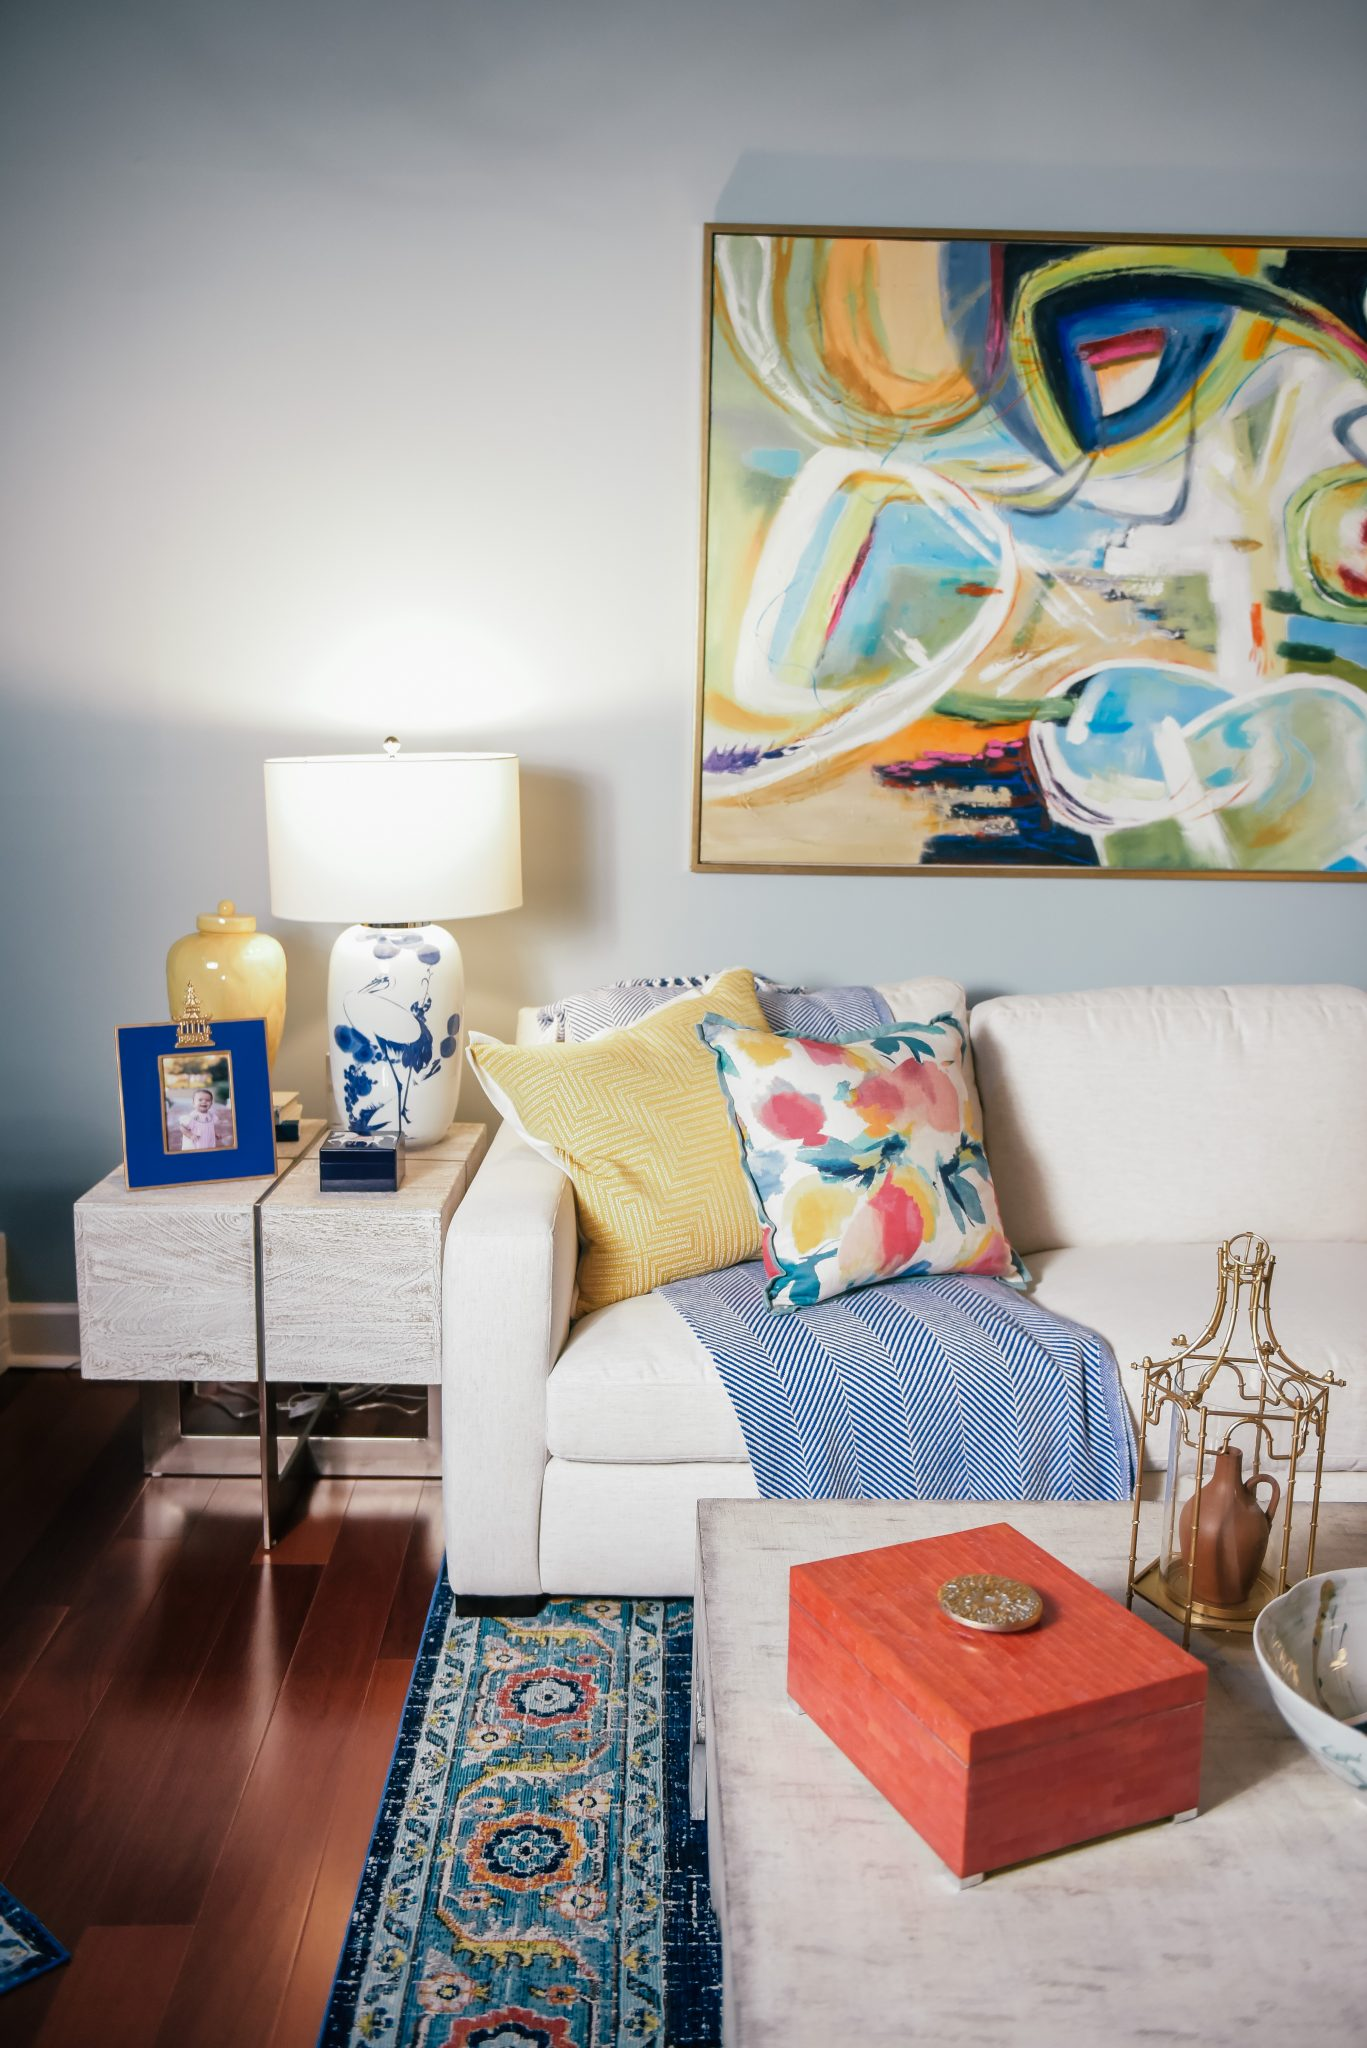 how to style a room, interior designer, Kimberly Grigg designs